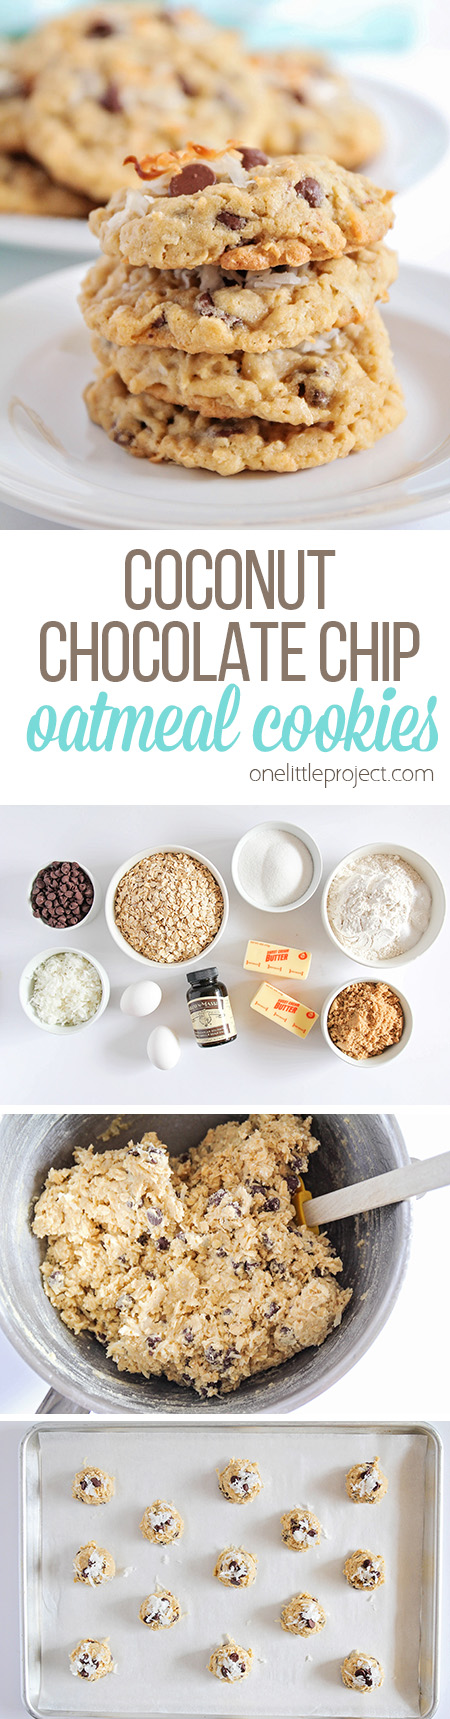 These chewy and sweet coconut chocolate chip oatmeal cookies are irresistibly delicious! They're quick and easy to make, and totally addicting!